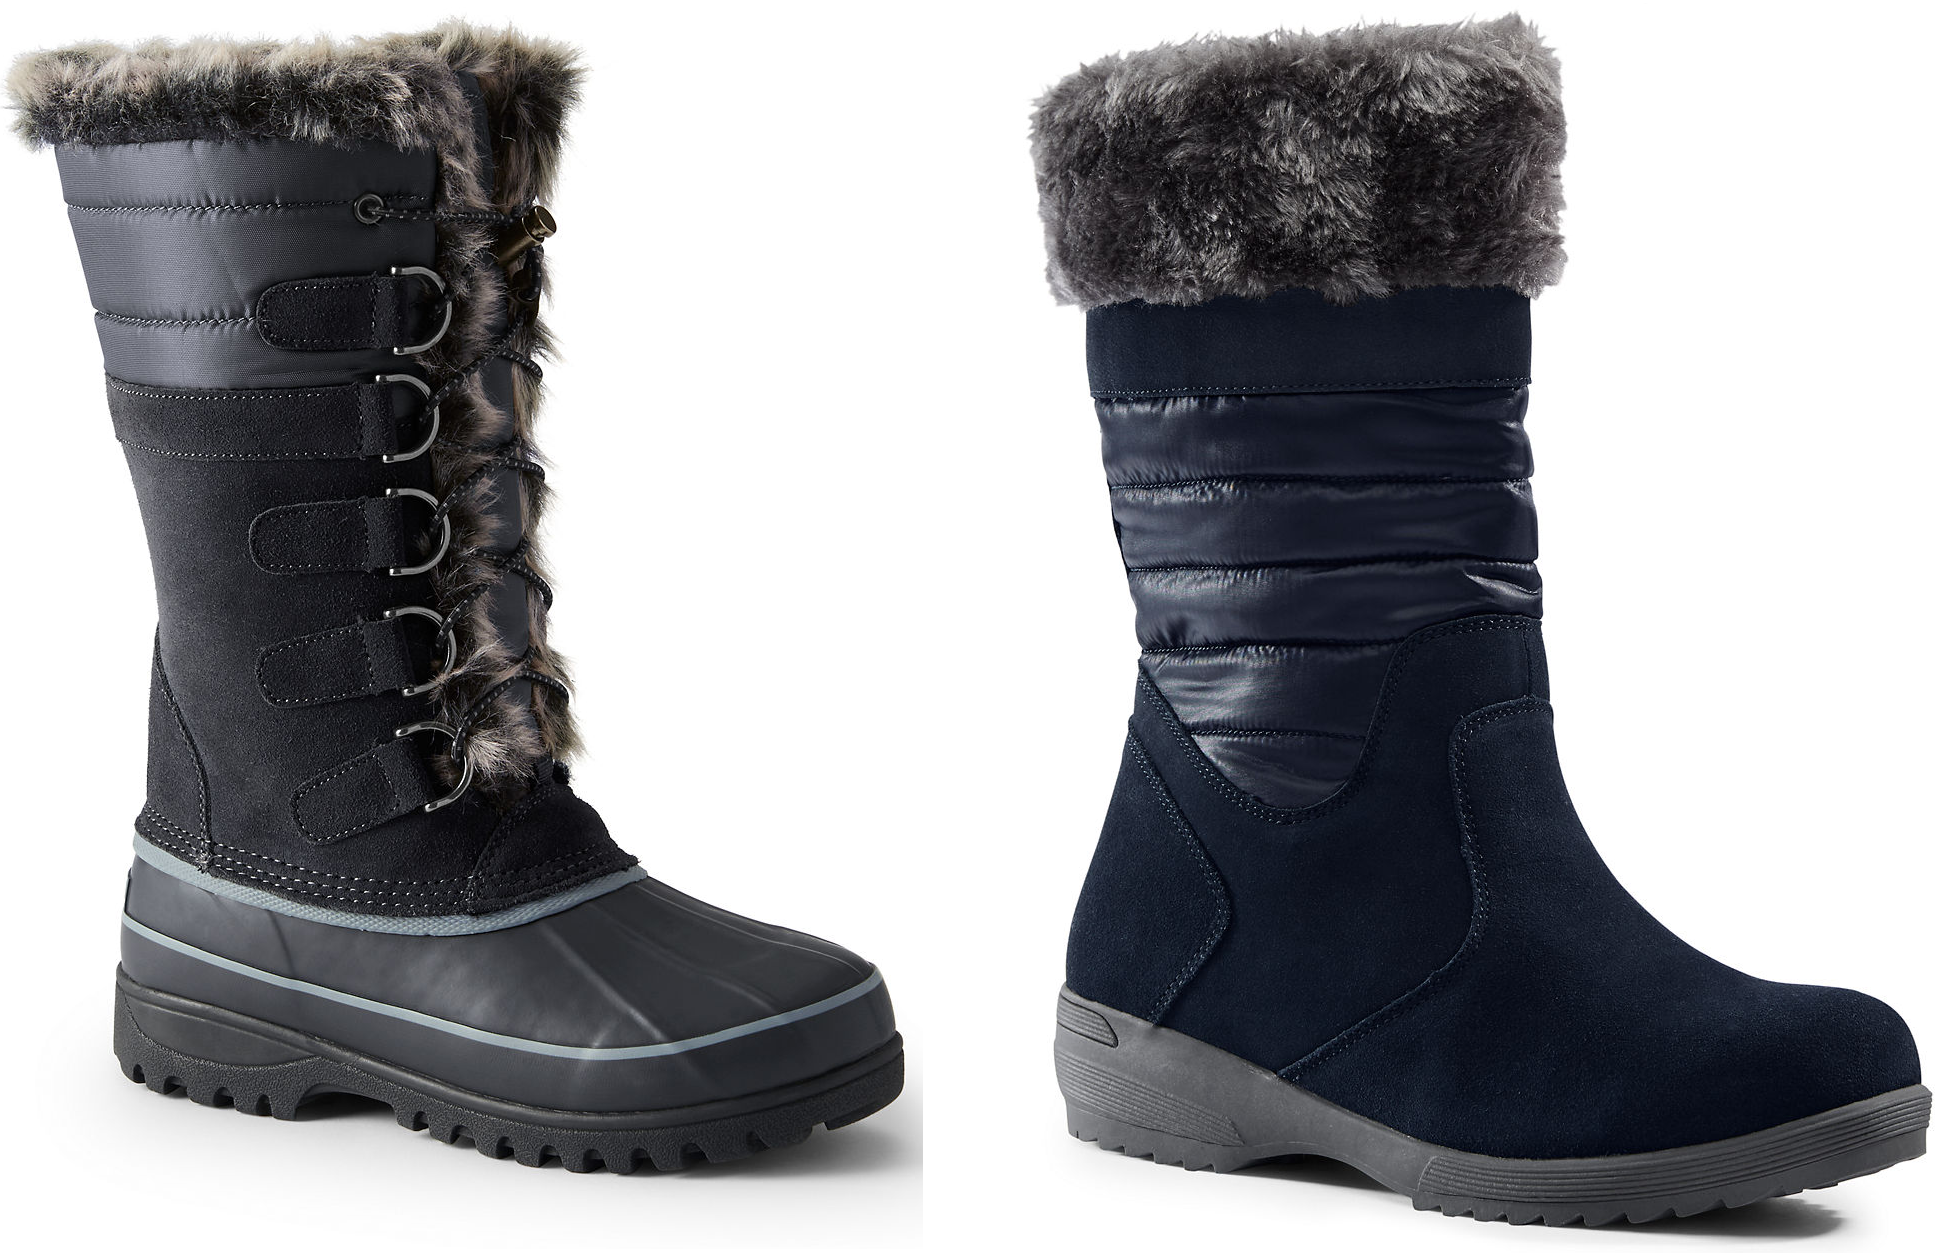 Find quality Women's Snow Boots at Lands' End. Keep your feet warm and dry with women's tall snow boots, all weather boots and pull-on snow boots.